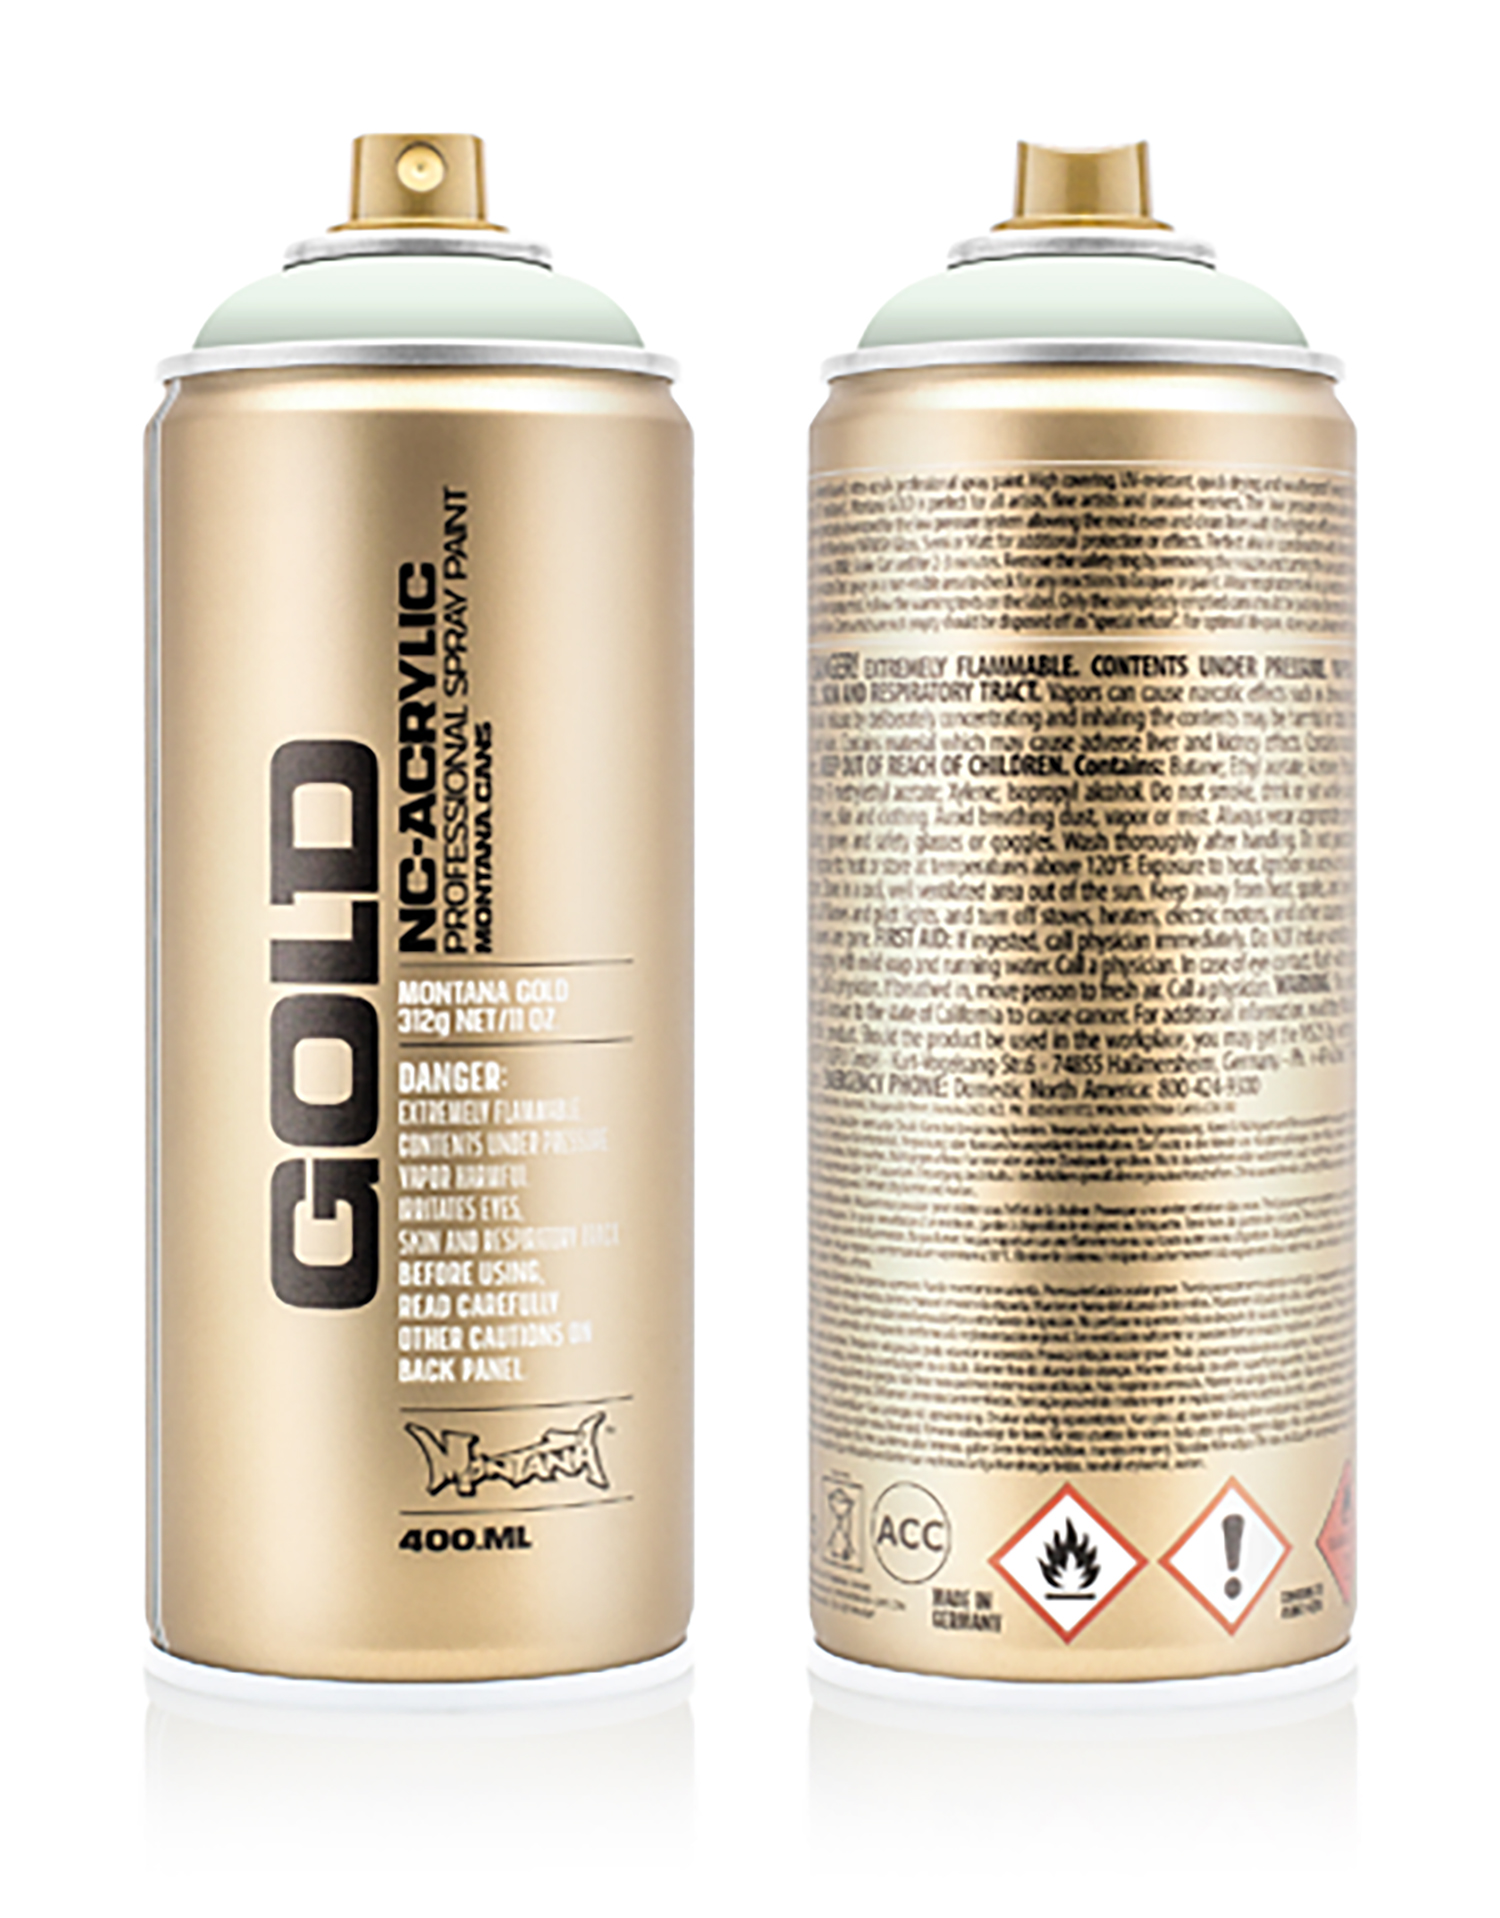 MONTANA-GOLD-SPRAY-400ML-G-6200